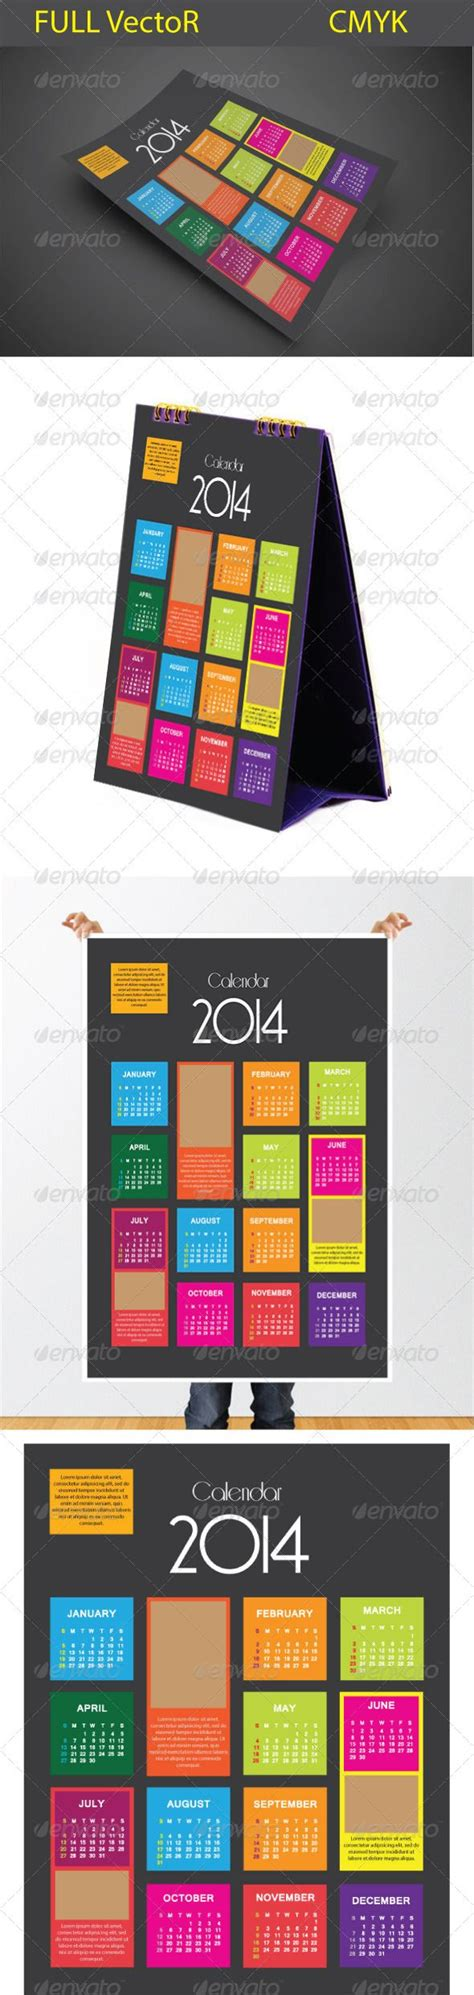 calendar design for company 17 best images about corporate calendar design on